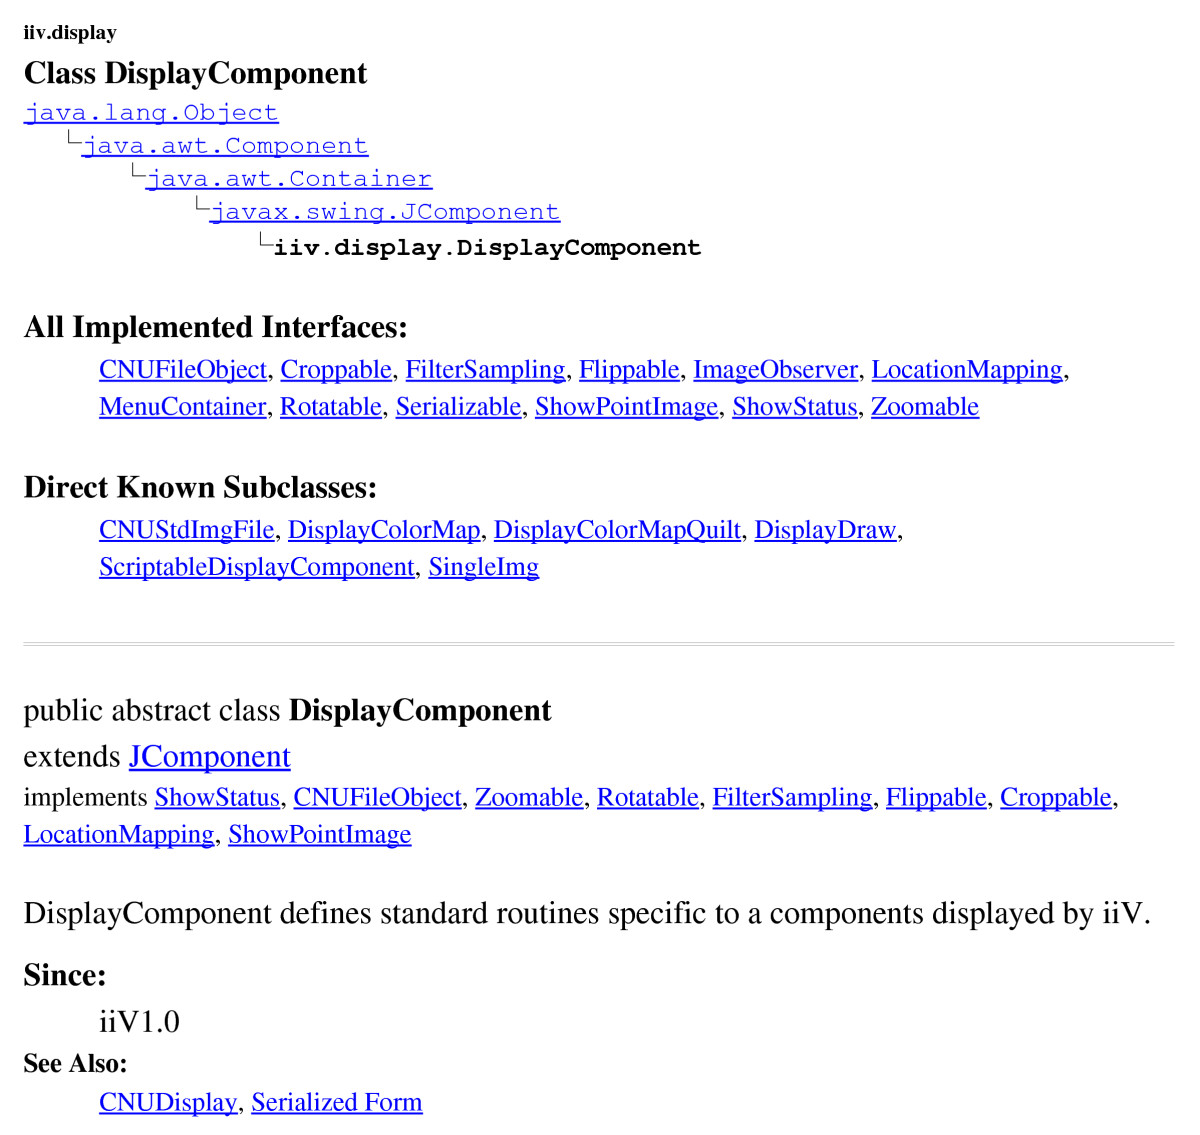 http://static-content.springer.com/image/art%3A10.1186%2F1471-2342-8-10/MediaObjects/12880_2007_Article_50_Fig1_HTML.jpg